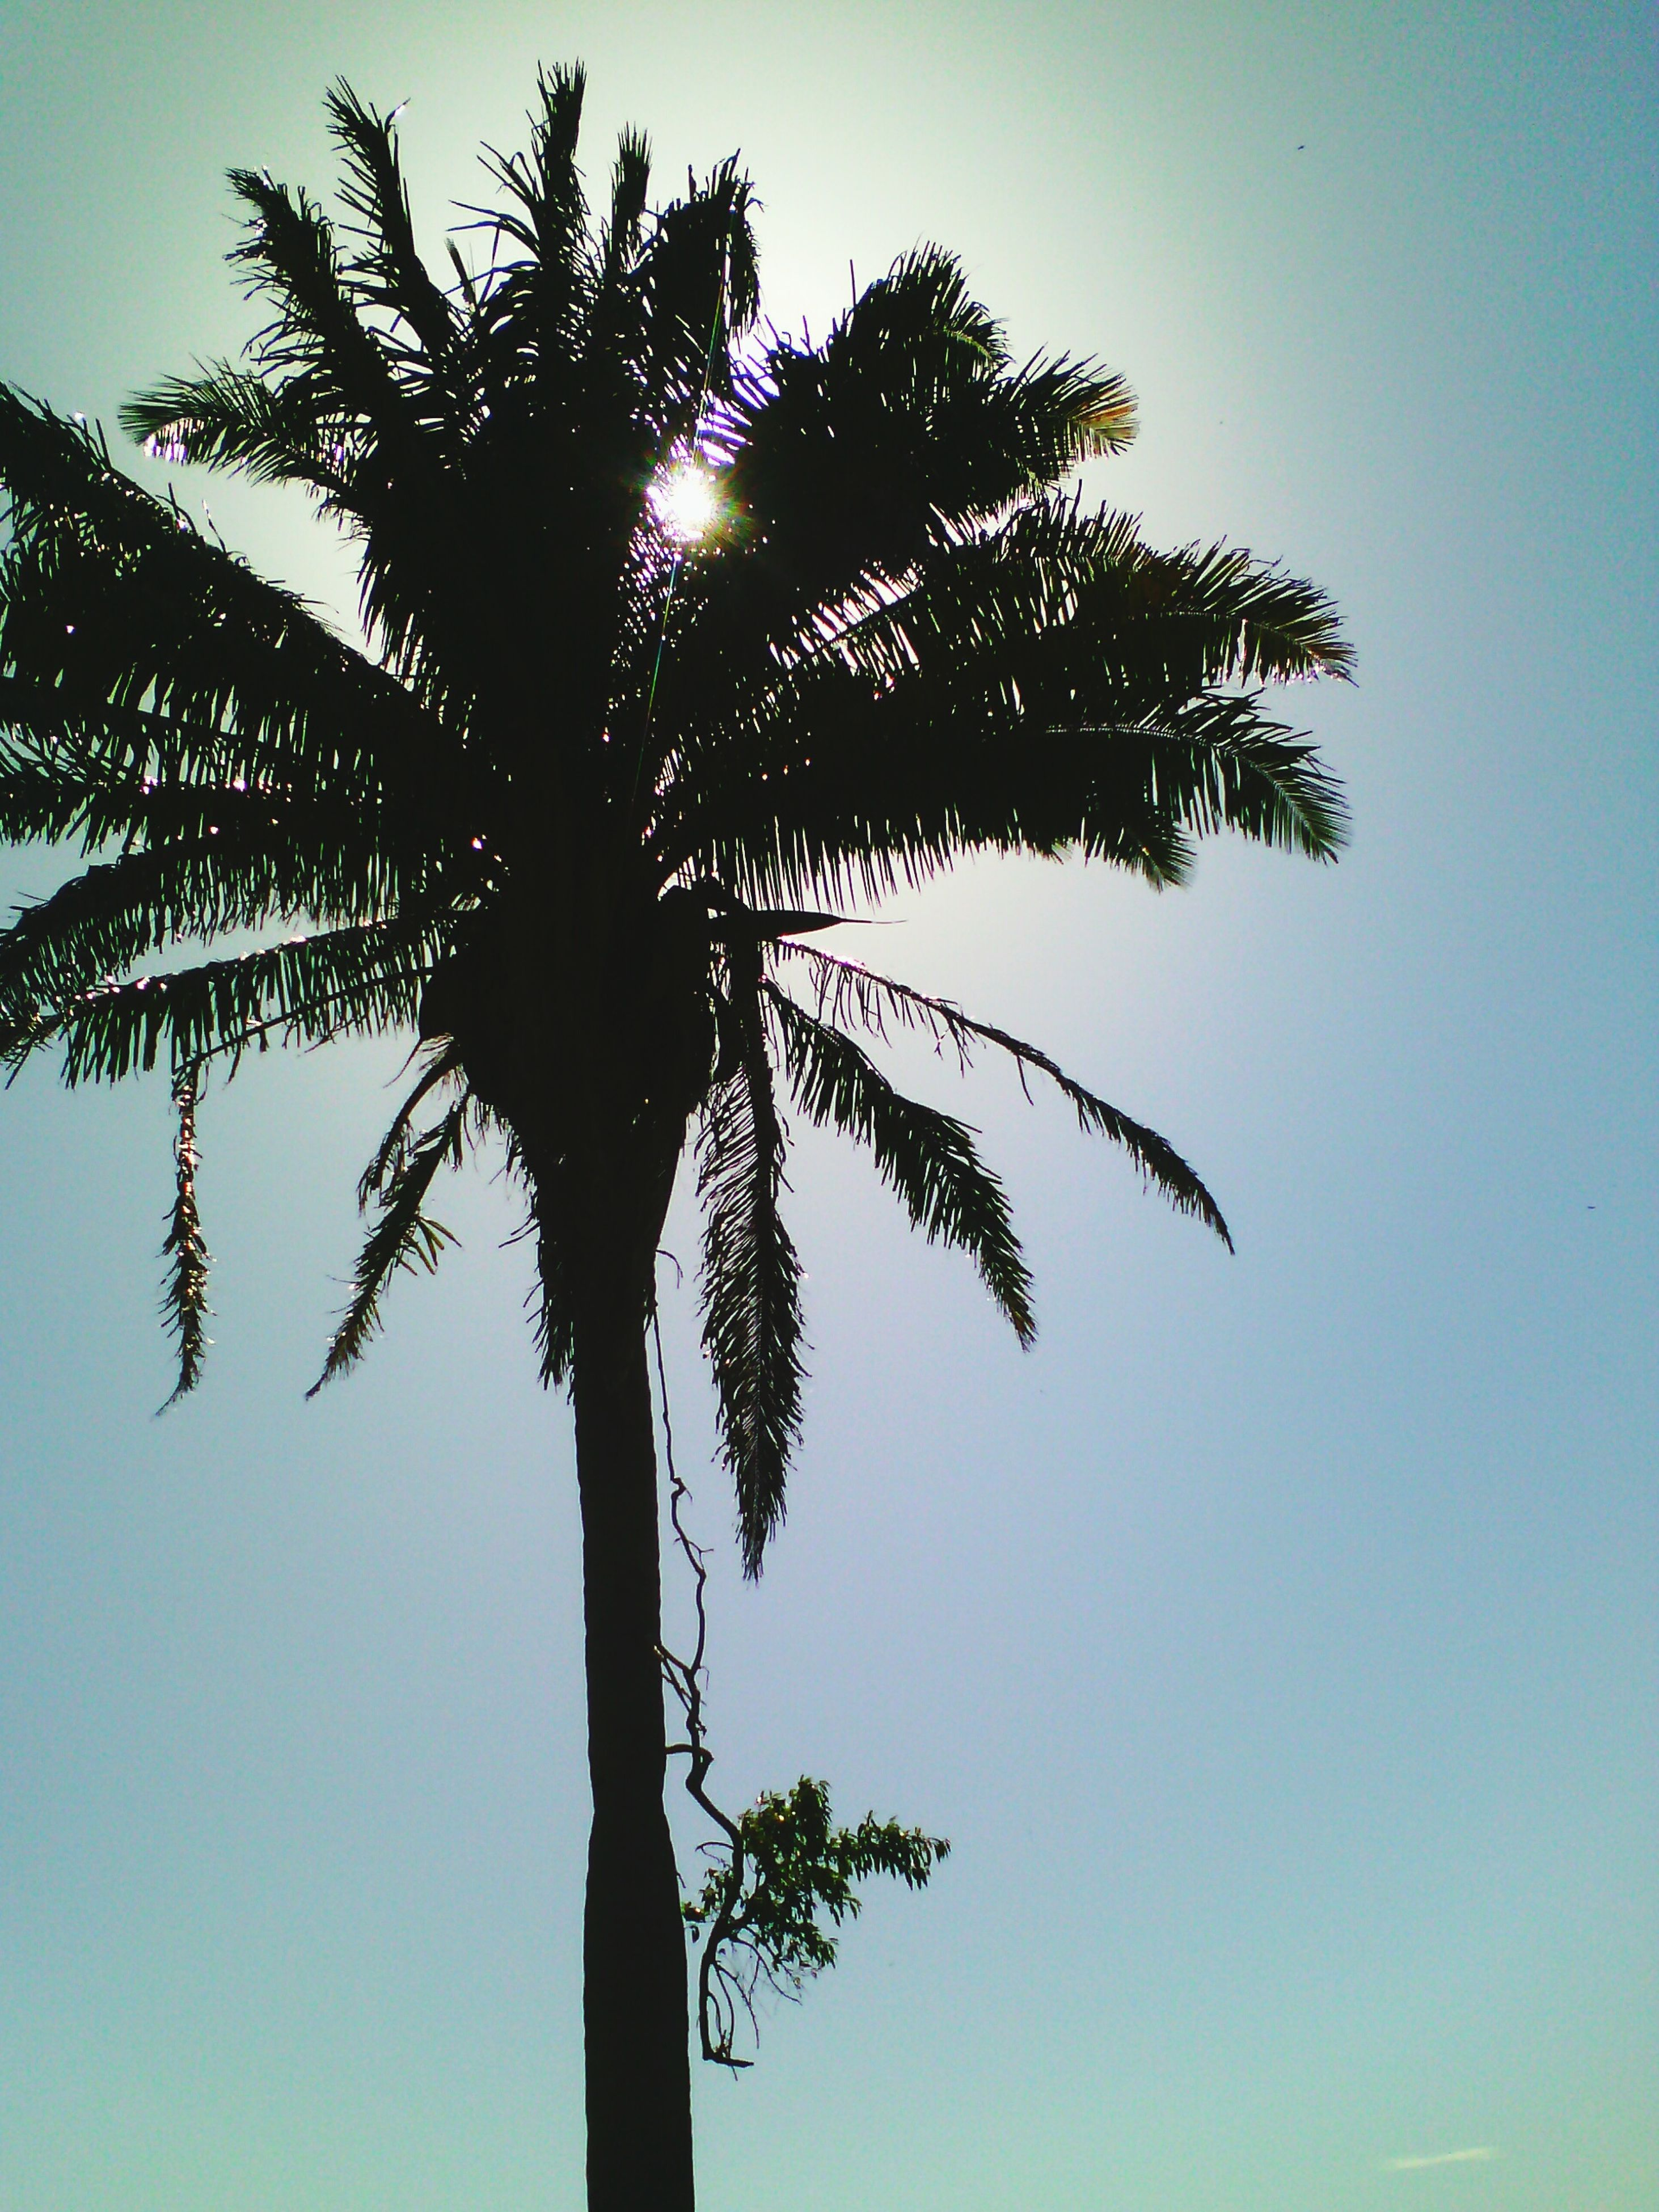 tree, low angle view, clear sky, silhouette, tree trunk, tranquility, branch, growth, nature, beauty in nature, tranquil scene, sun, palm tree, scenics, sky, sunlight, single tree, sunset, no people, outdoors